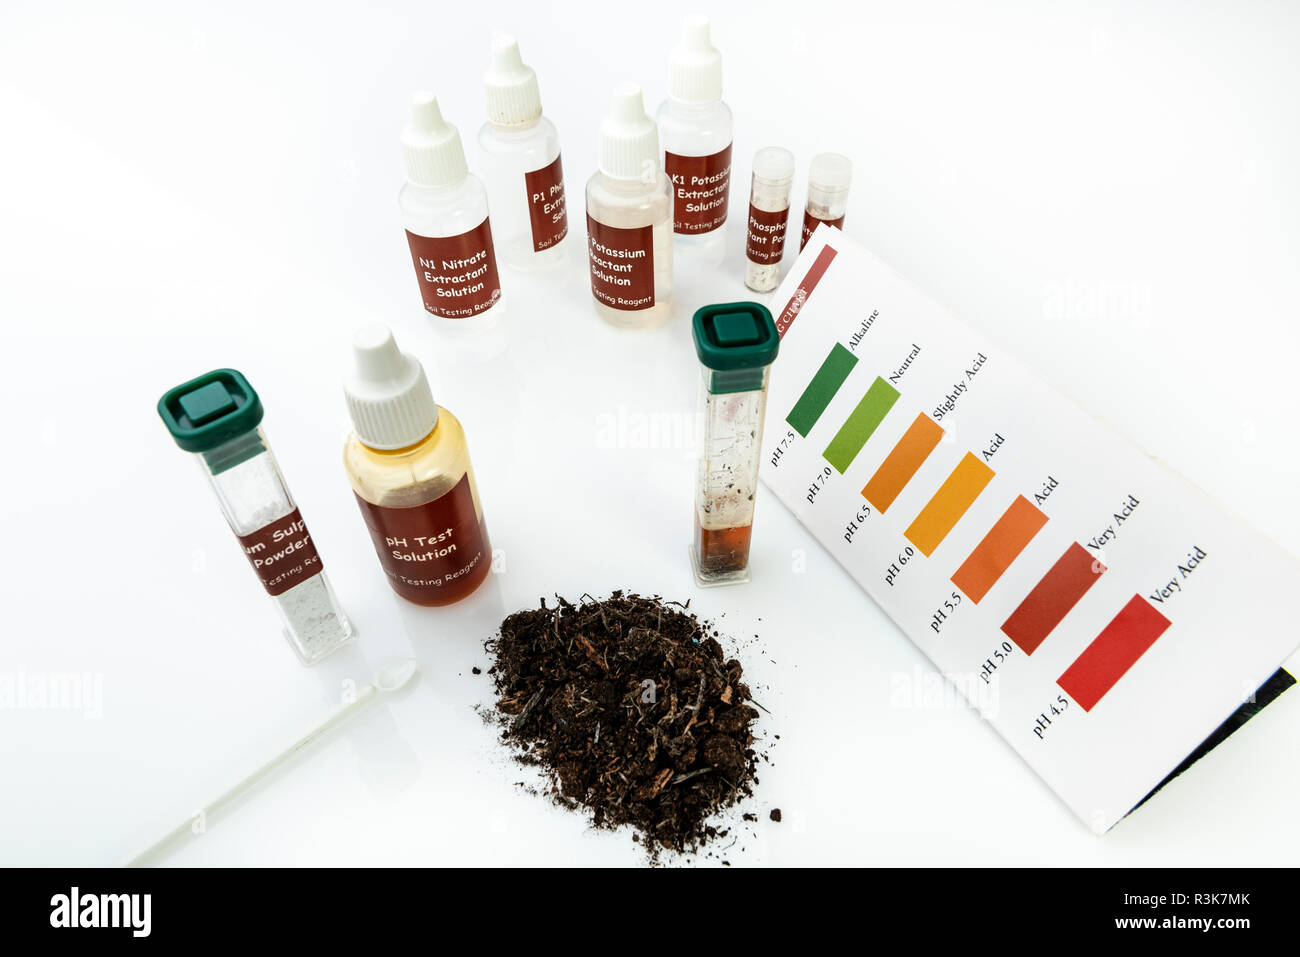 Soil Testing Kit with chemicals for testing potassium